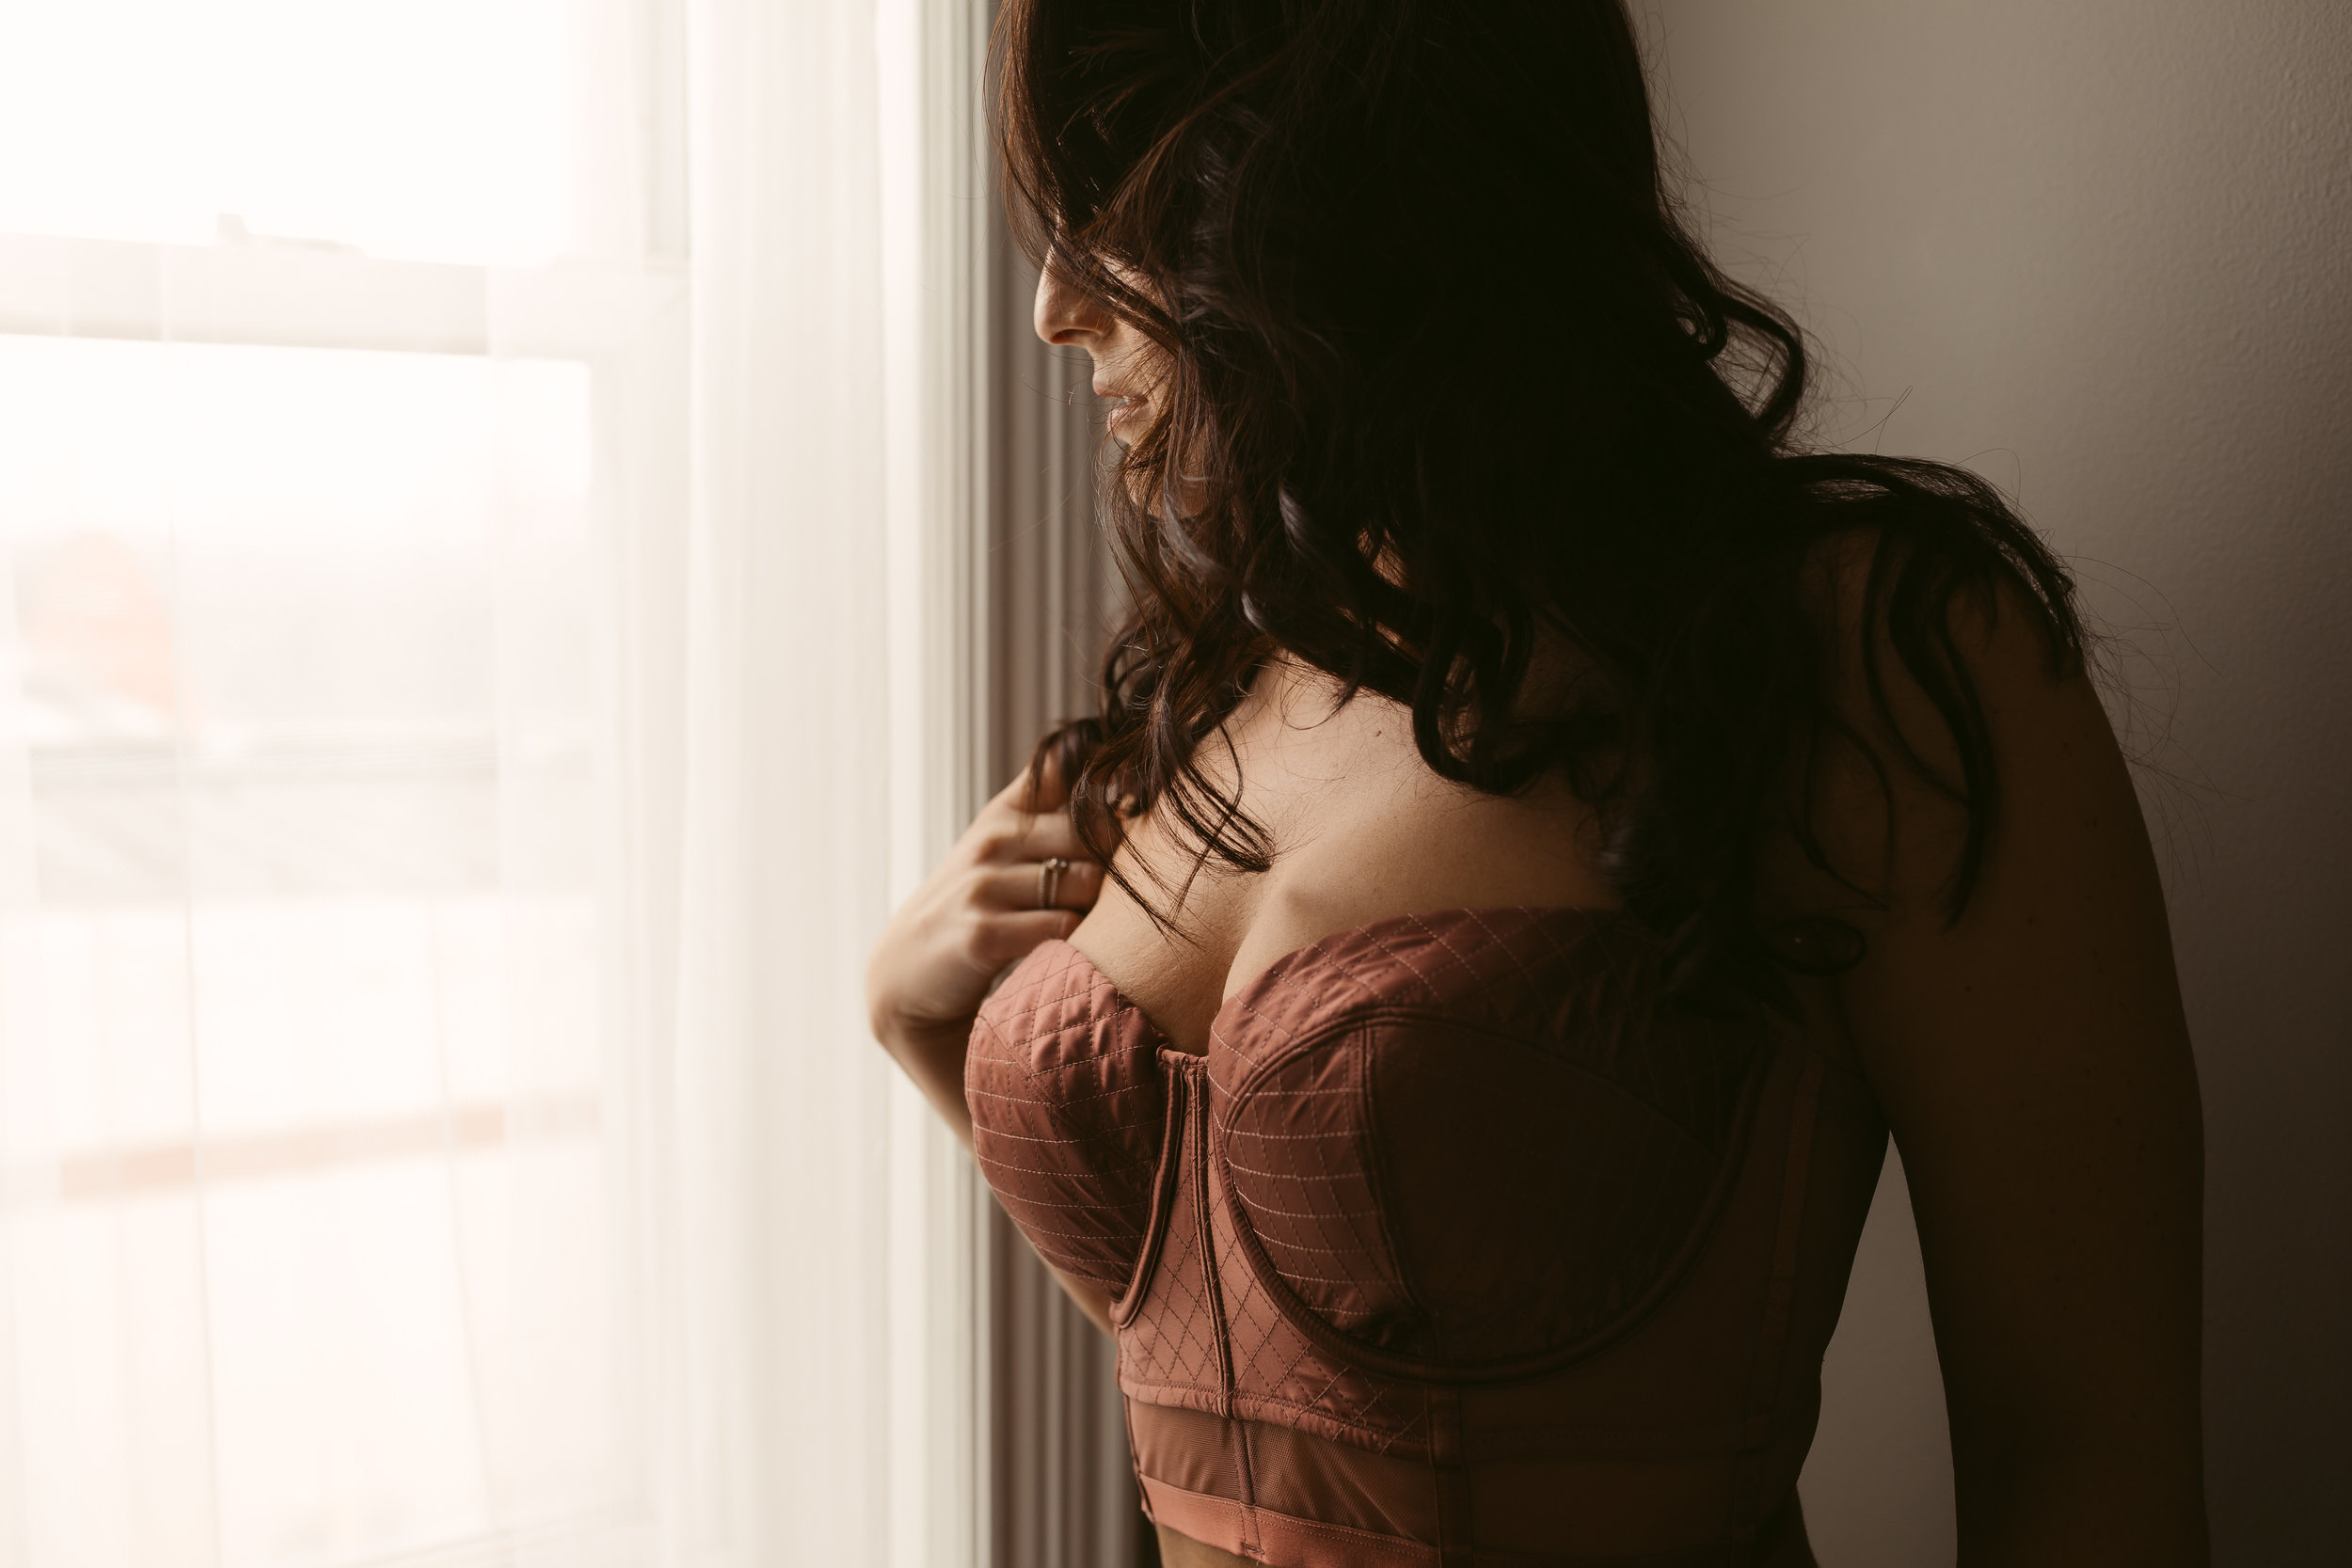 Butterfly_Boudoir_Michigan_Boudoir_Photography238.JPG